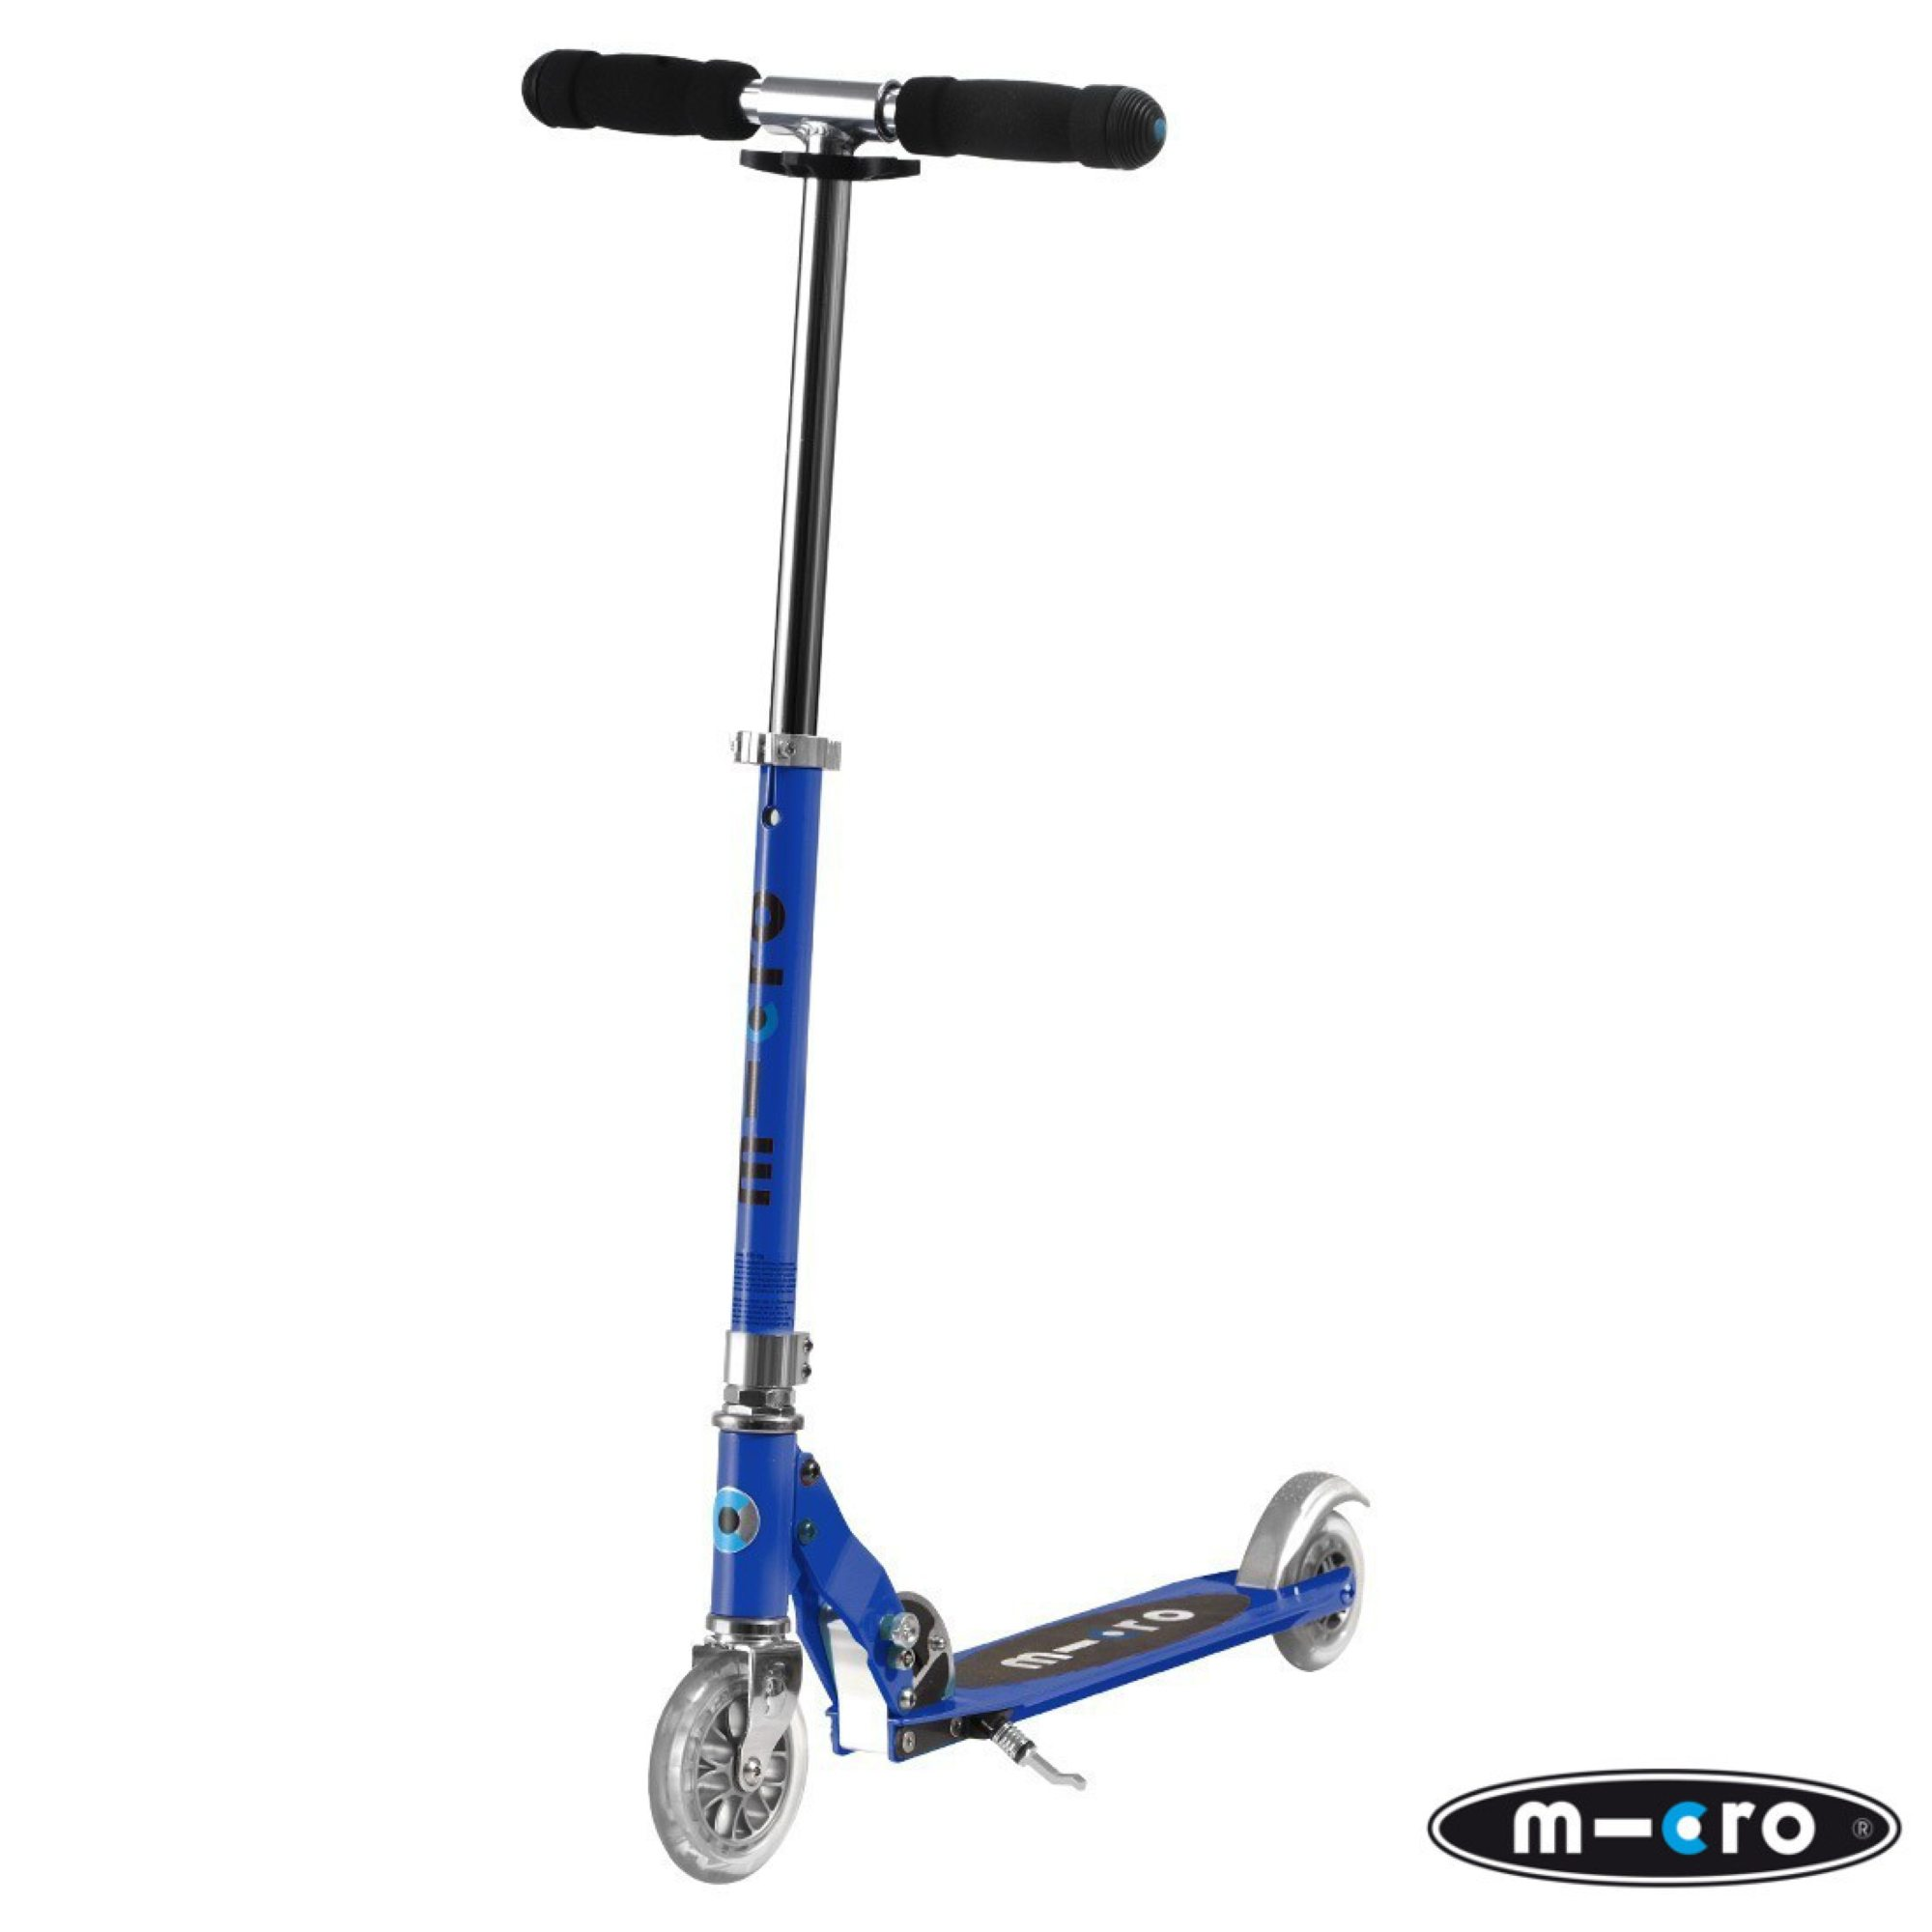 Top 10 Best Micro Pro Scooters Of 2018